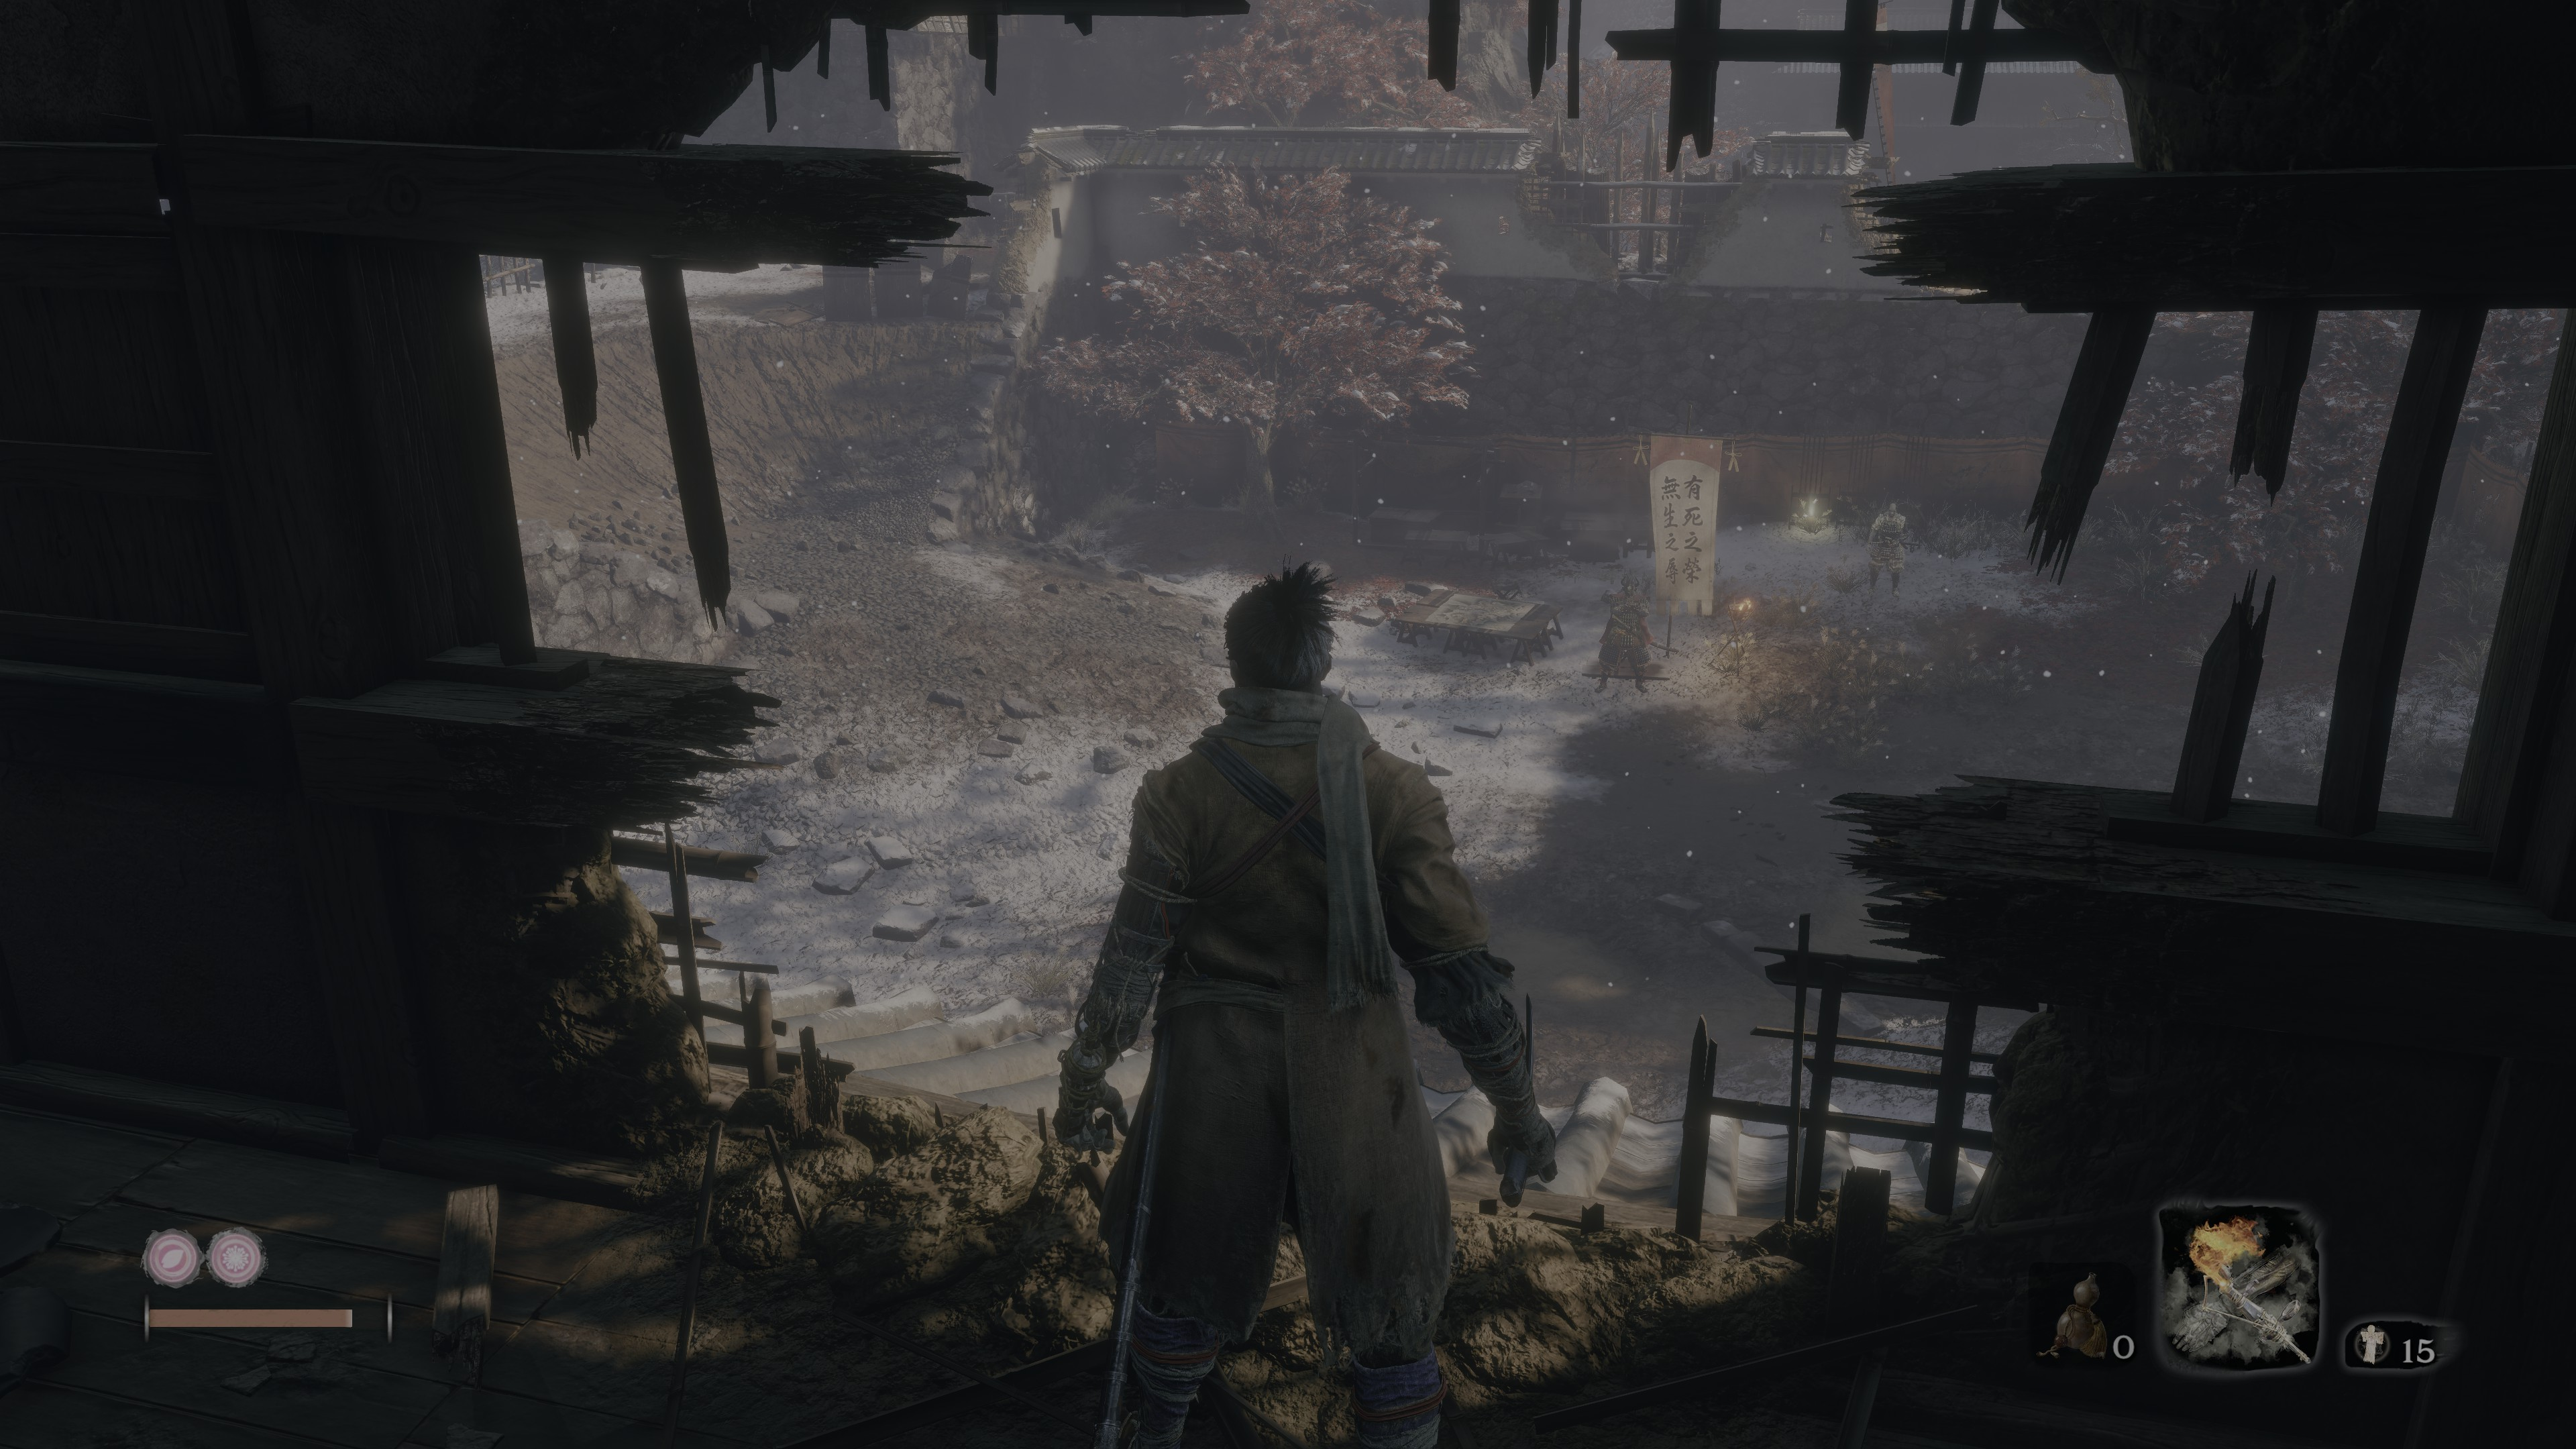 Sekiro: Shadows Die Twice [PC PS4 XONE] C996BDE1BCCBAB10D59FA5AC6534A2EA09646A86